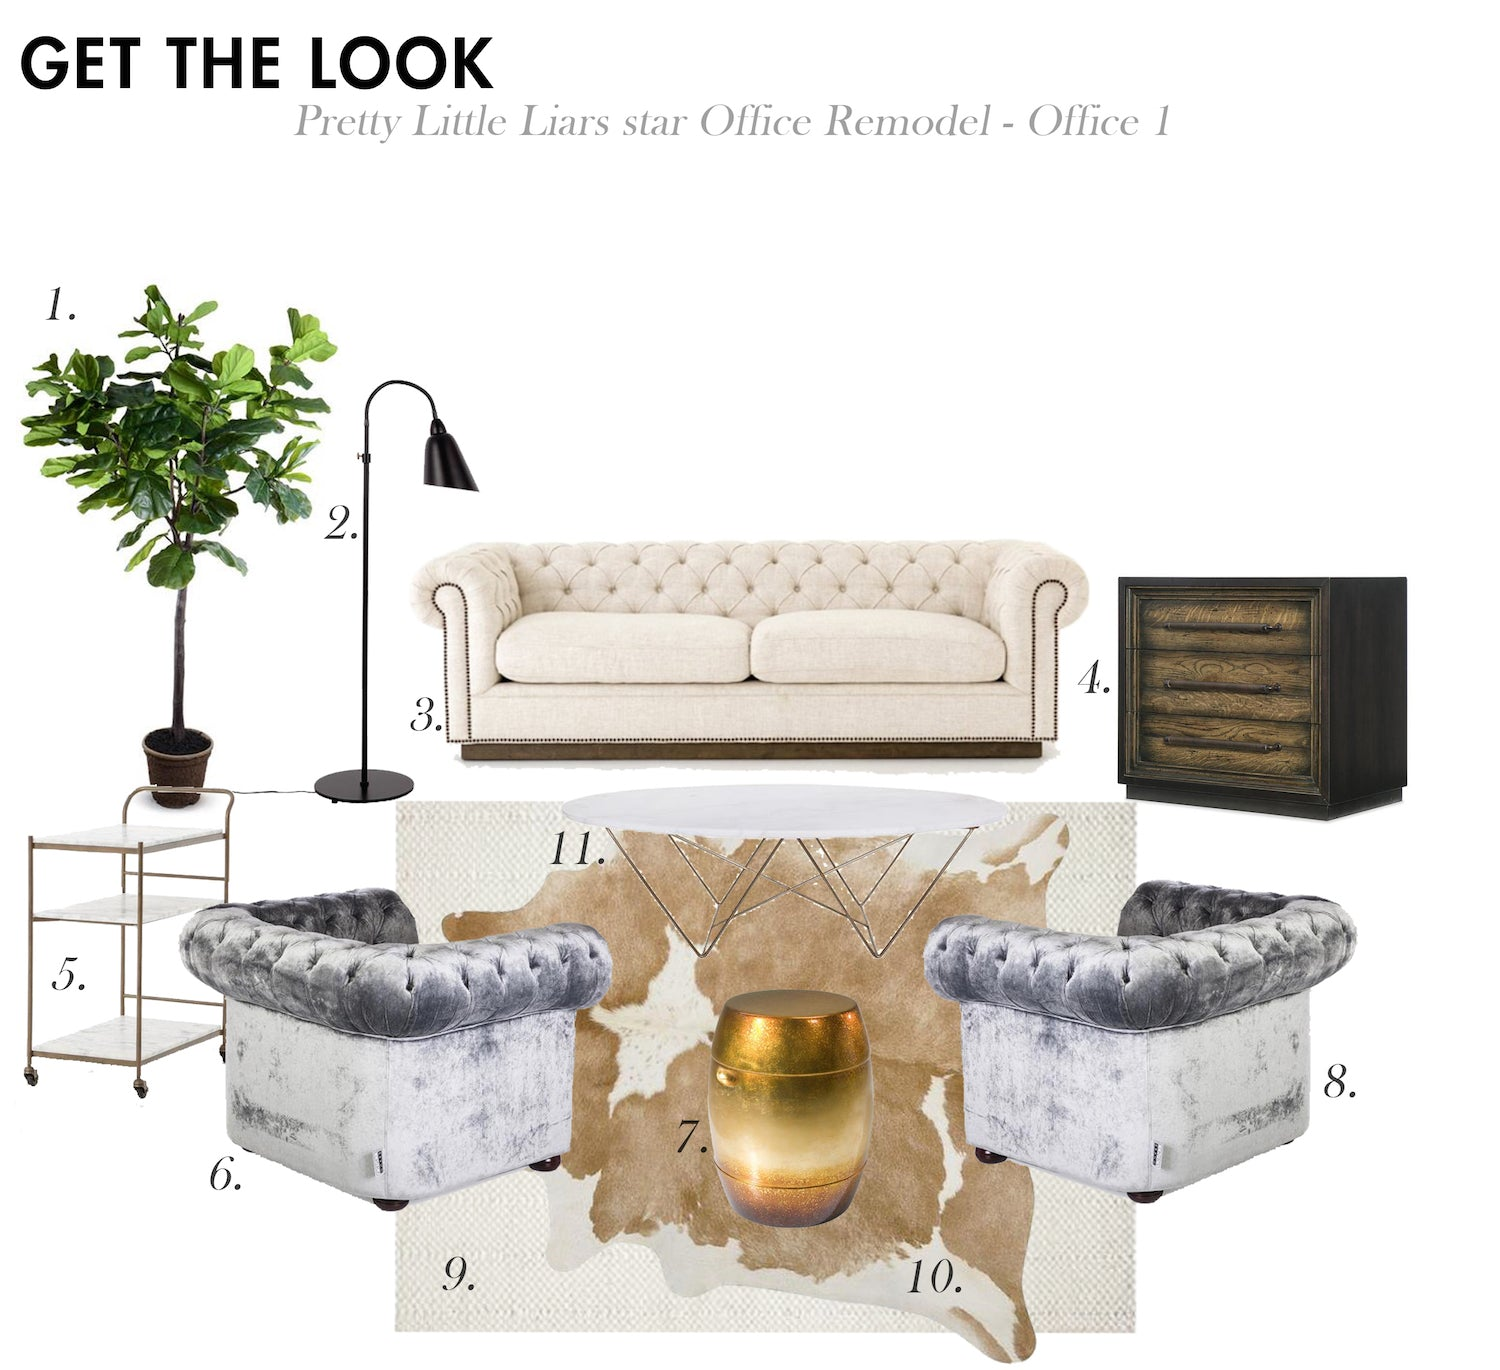 Get the Look For Less: Shay Mitchell's Office Remodel